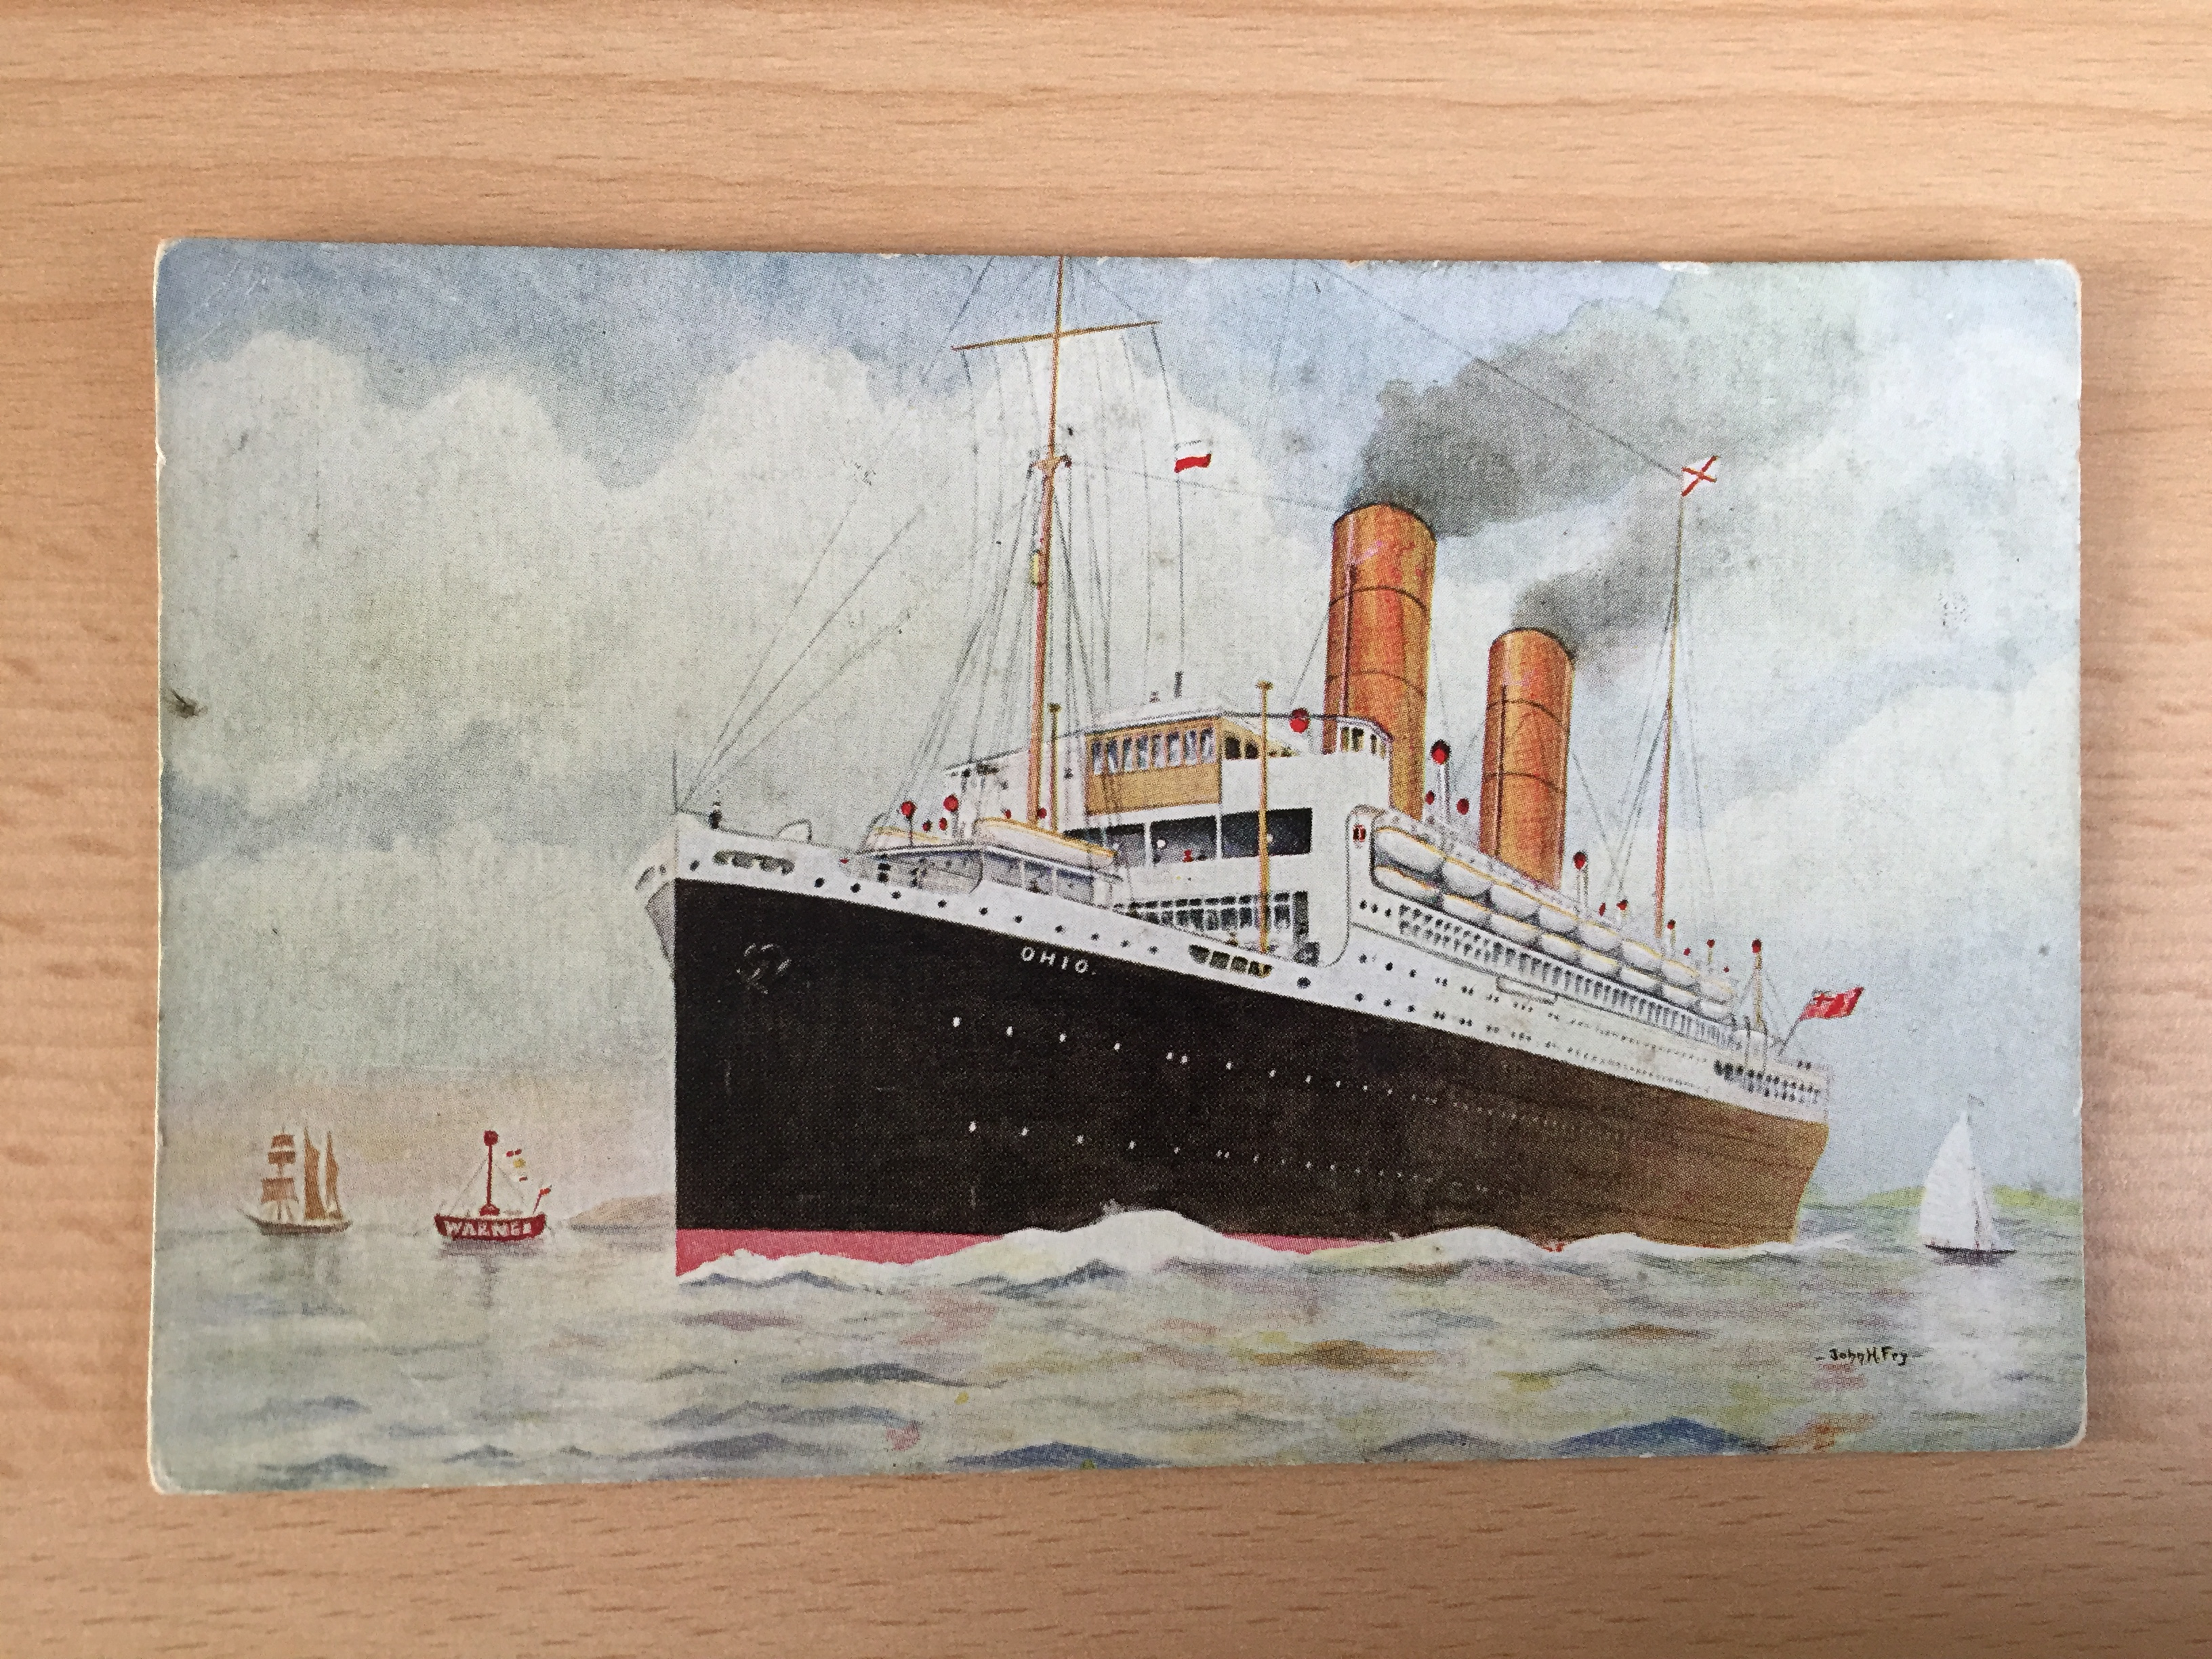 UNUSED COLOUR POSTCARD FROM THE ROYAL MAIL LINE VESSEL THE OHIO